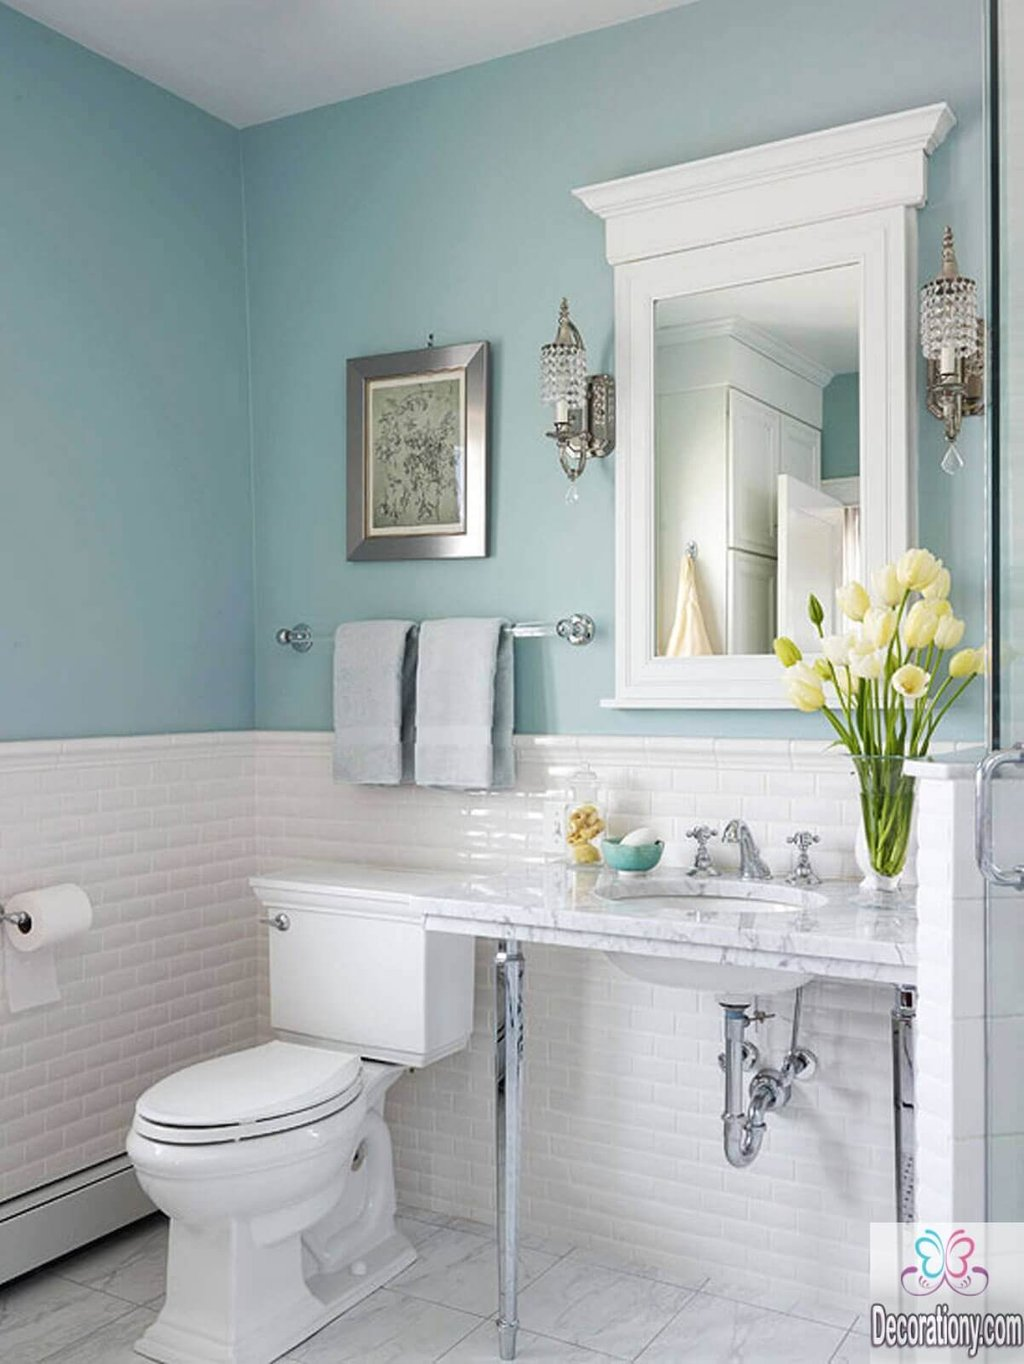 10 Affordable Color Small Bathroom Bathroom Shower Stalls For Small Bathrooms